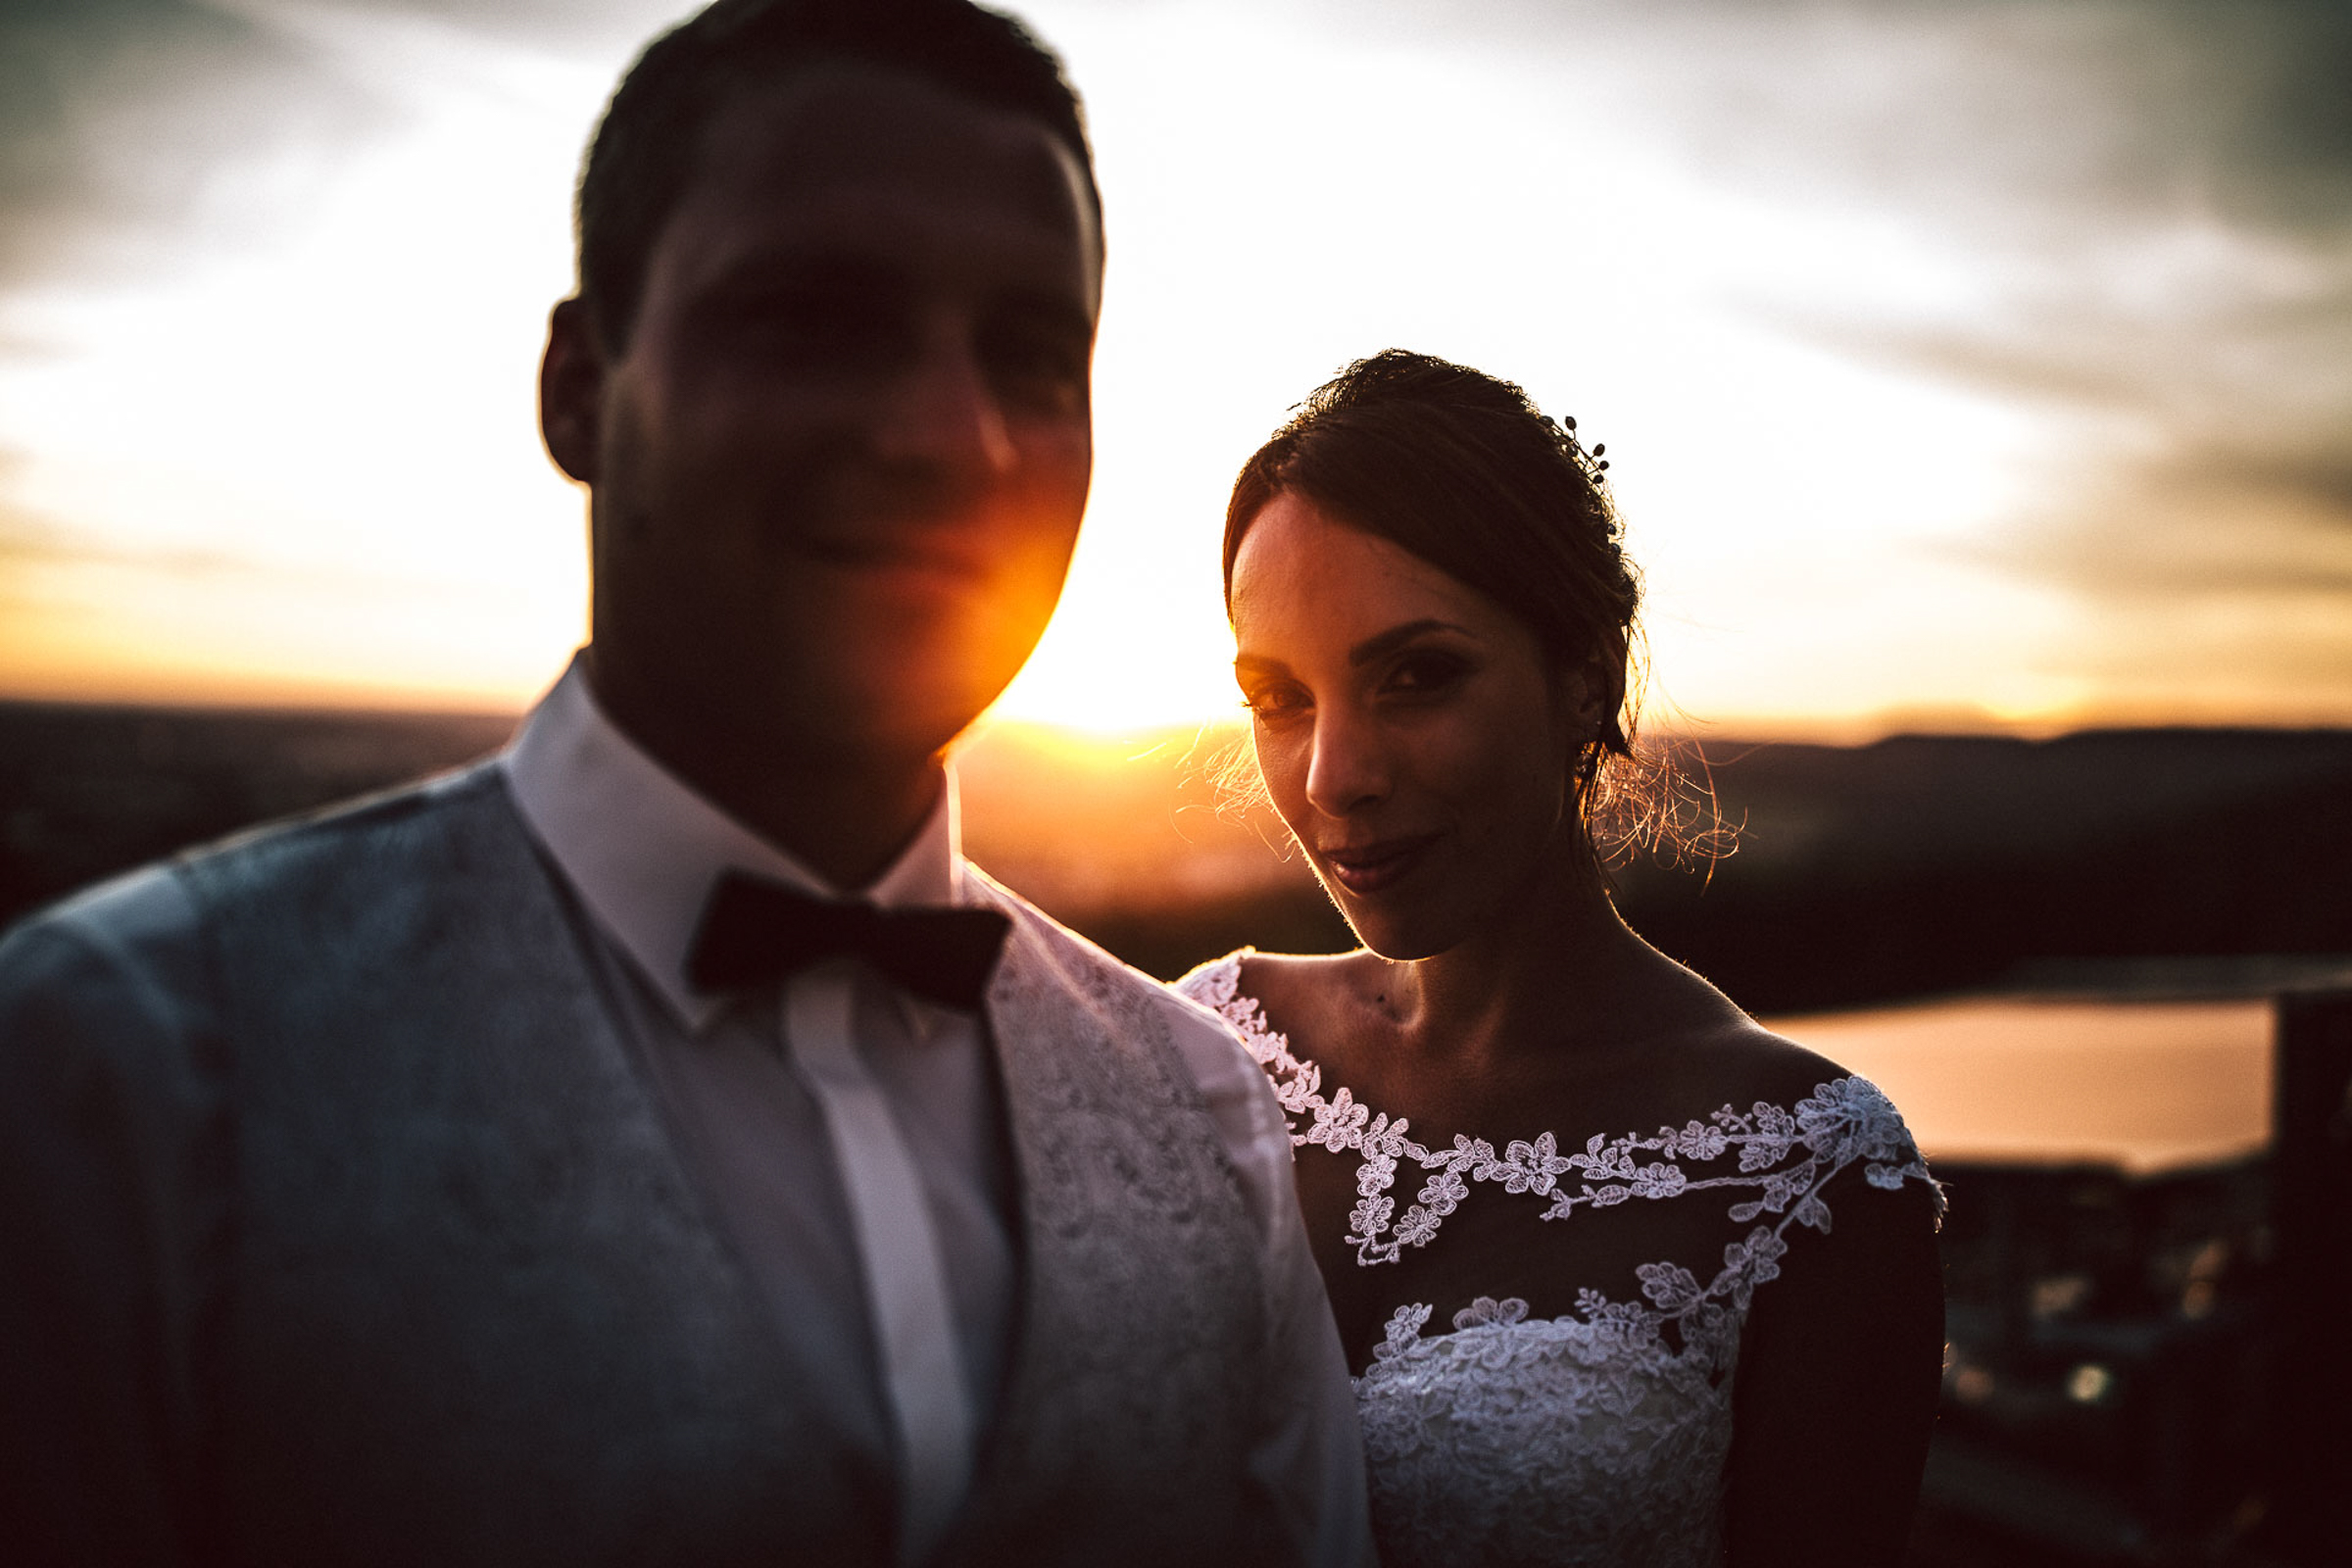 bride and groom portrait at sunset- photo by FineArt Weddings | Photography